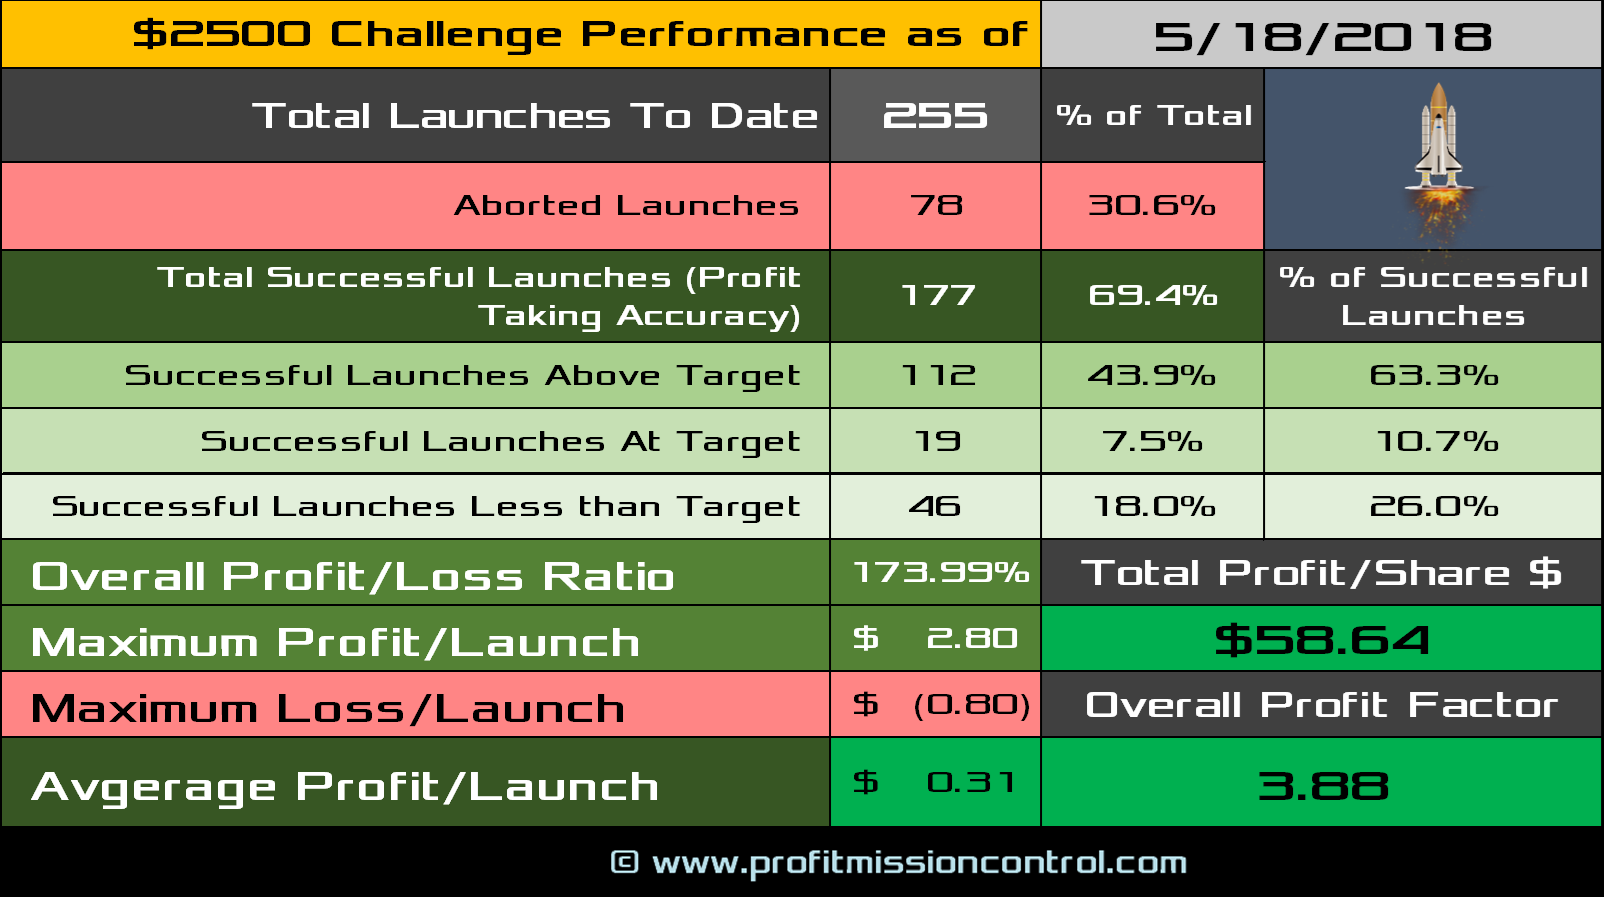 performance card 005-18-2018